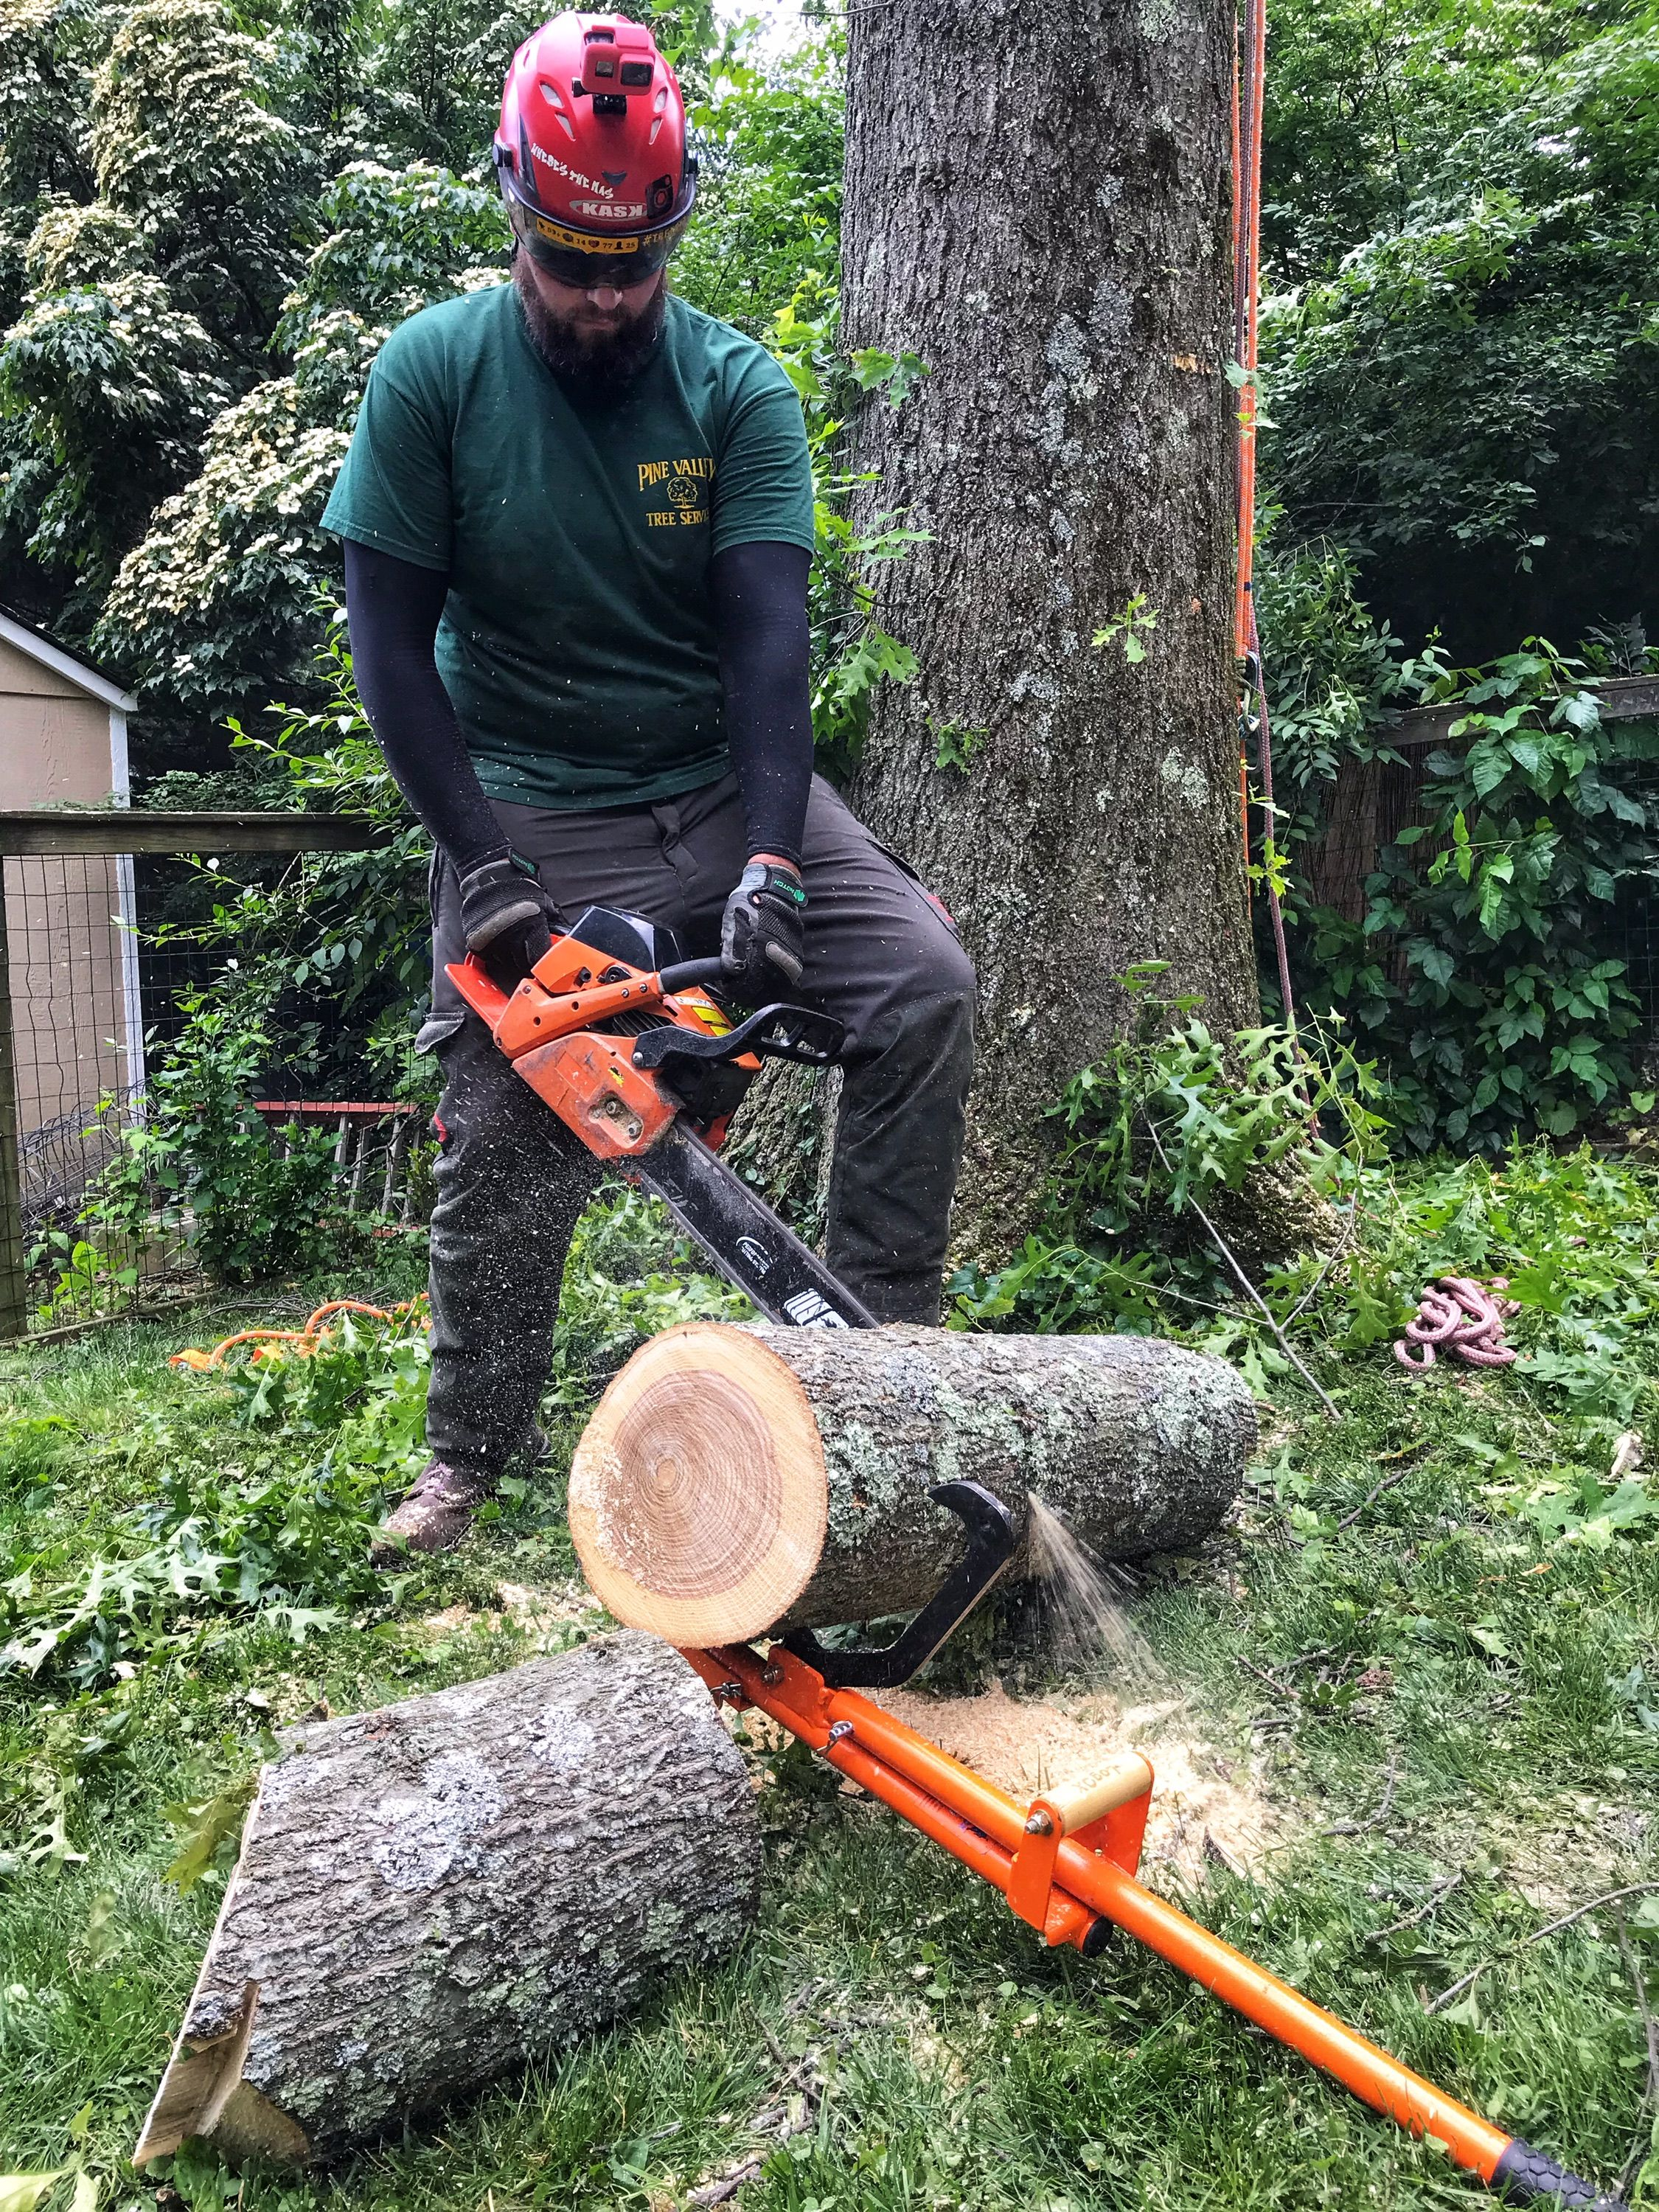 The Logox Is Growing In Popularity With Pro Arborists Using It To